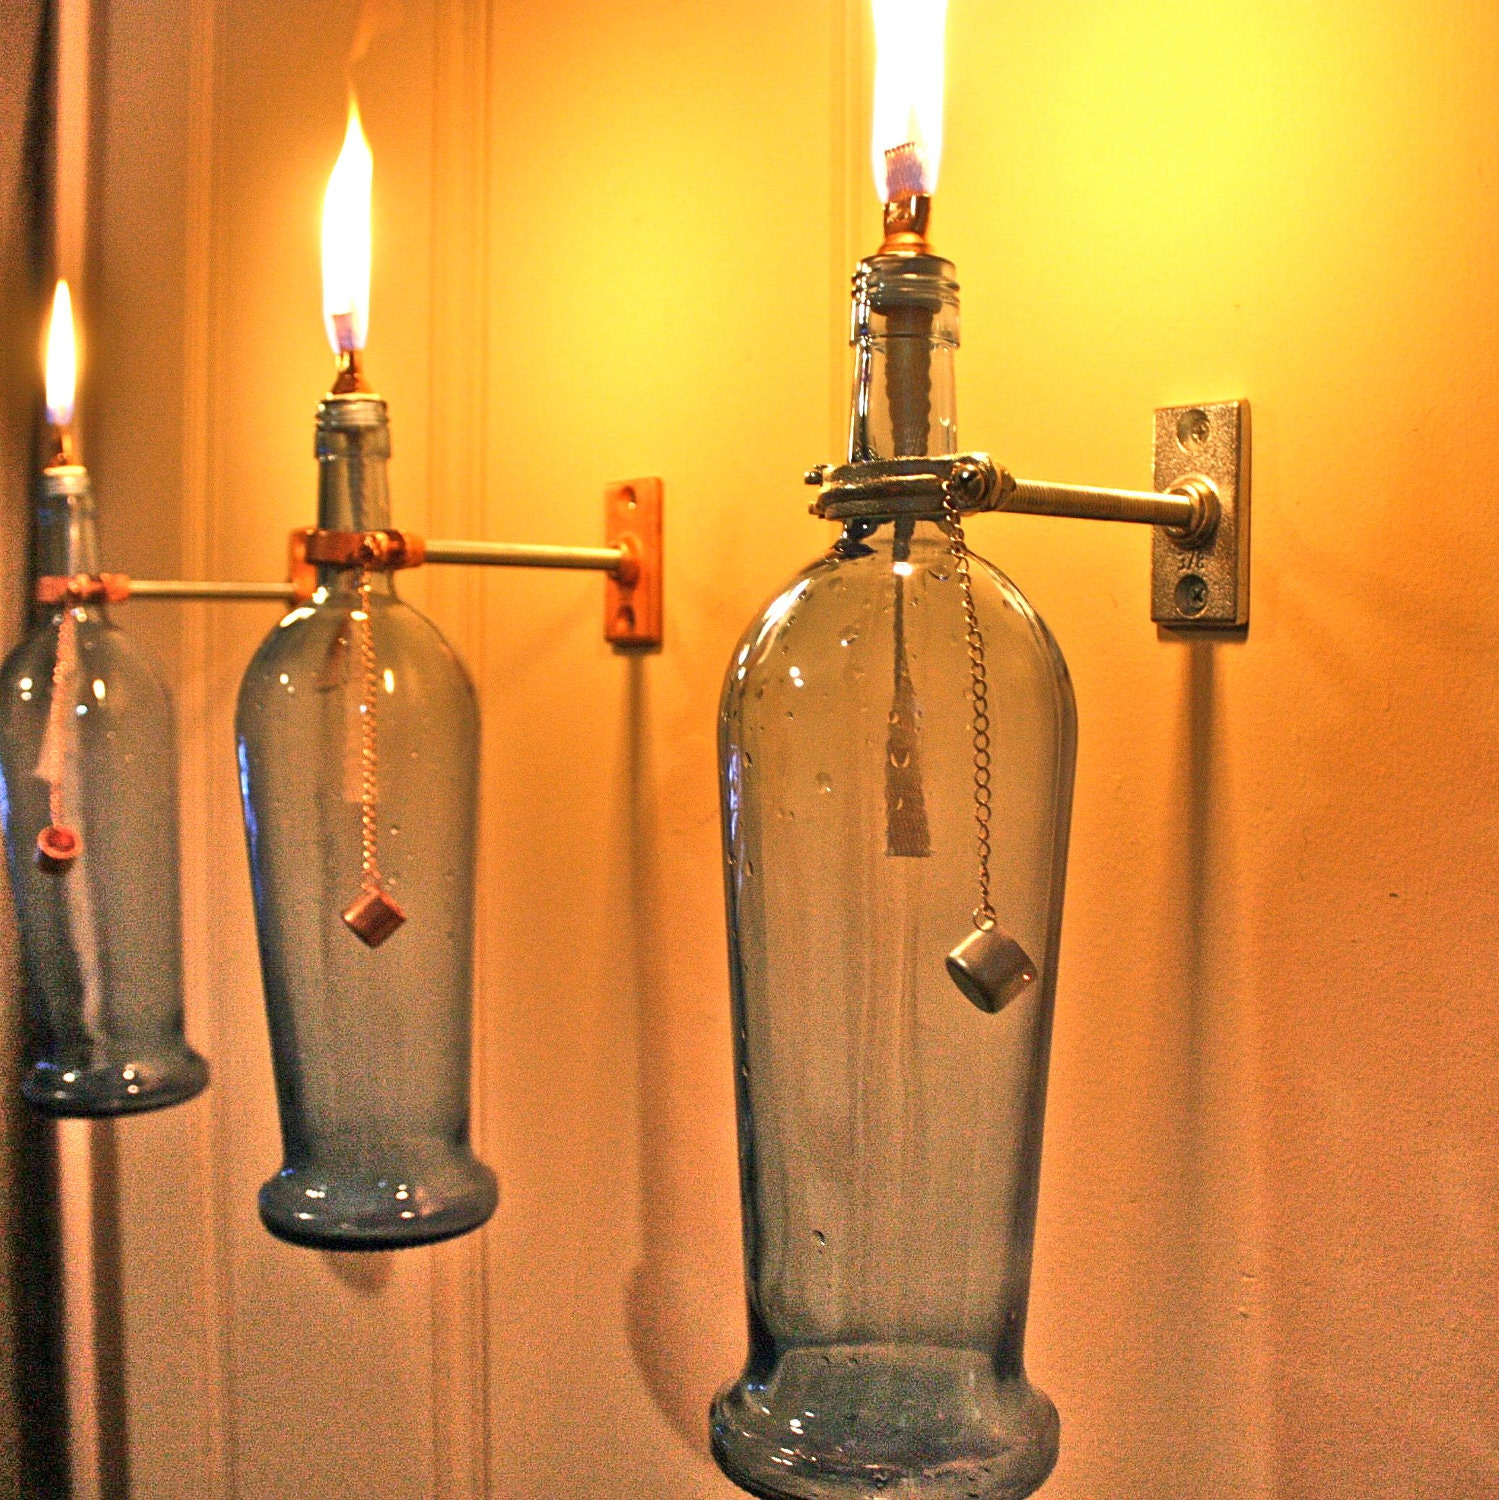 Hardware Only 1 Wine Bottle Oil Lamp Use Your Own For